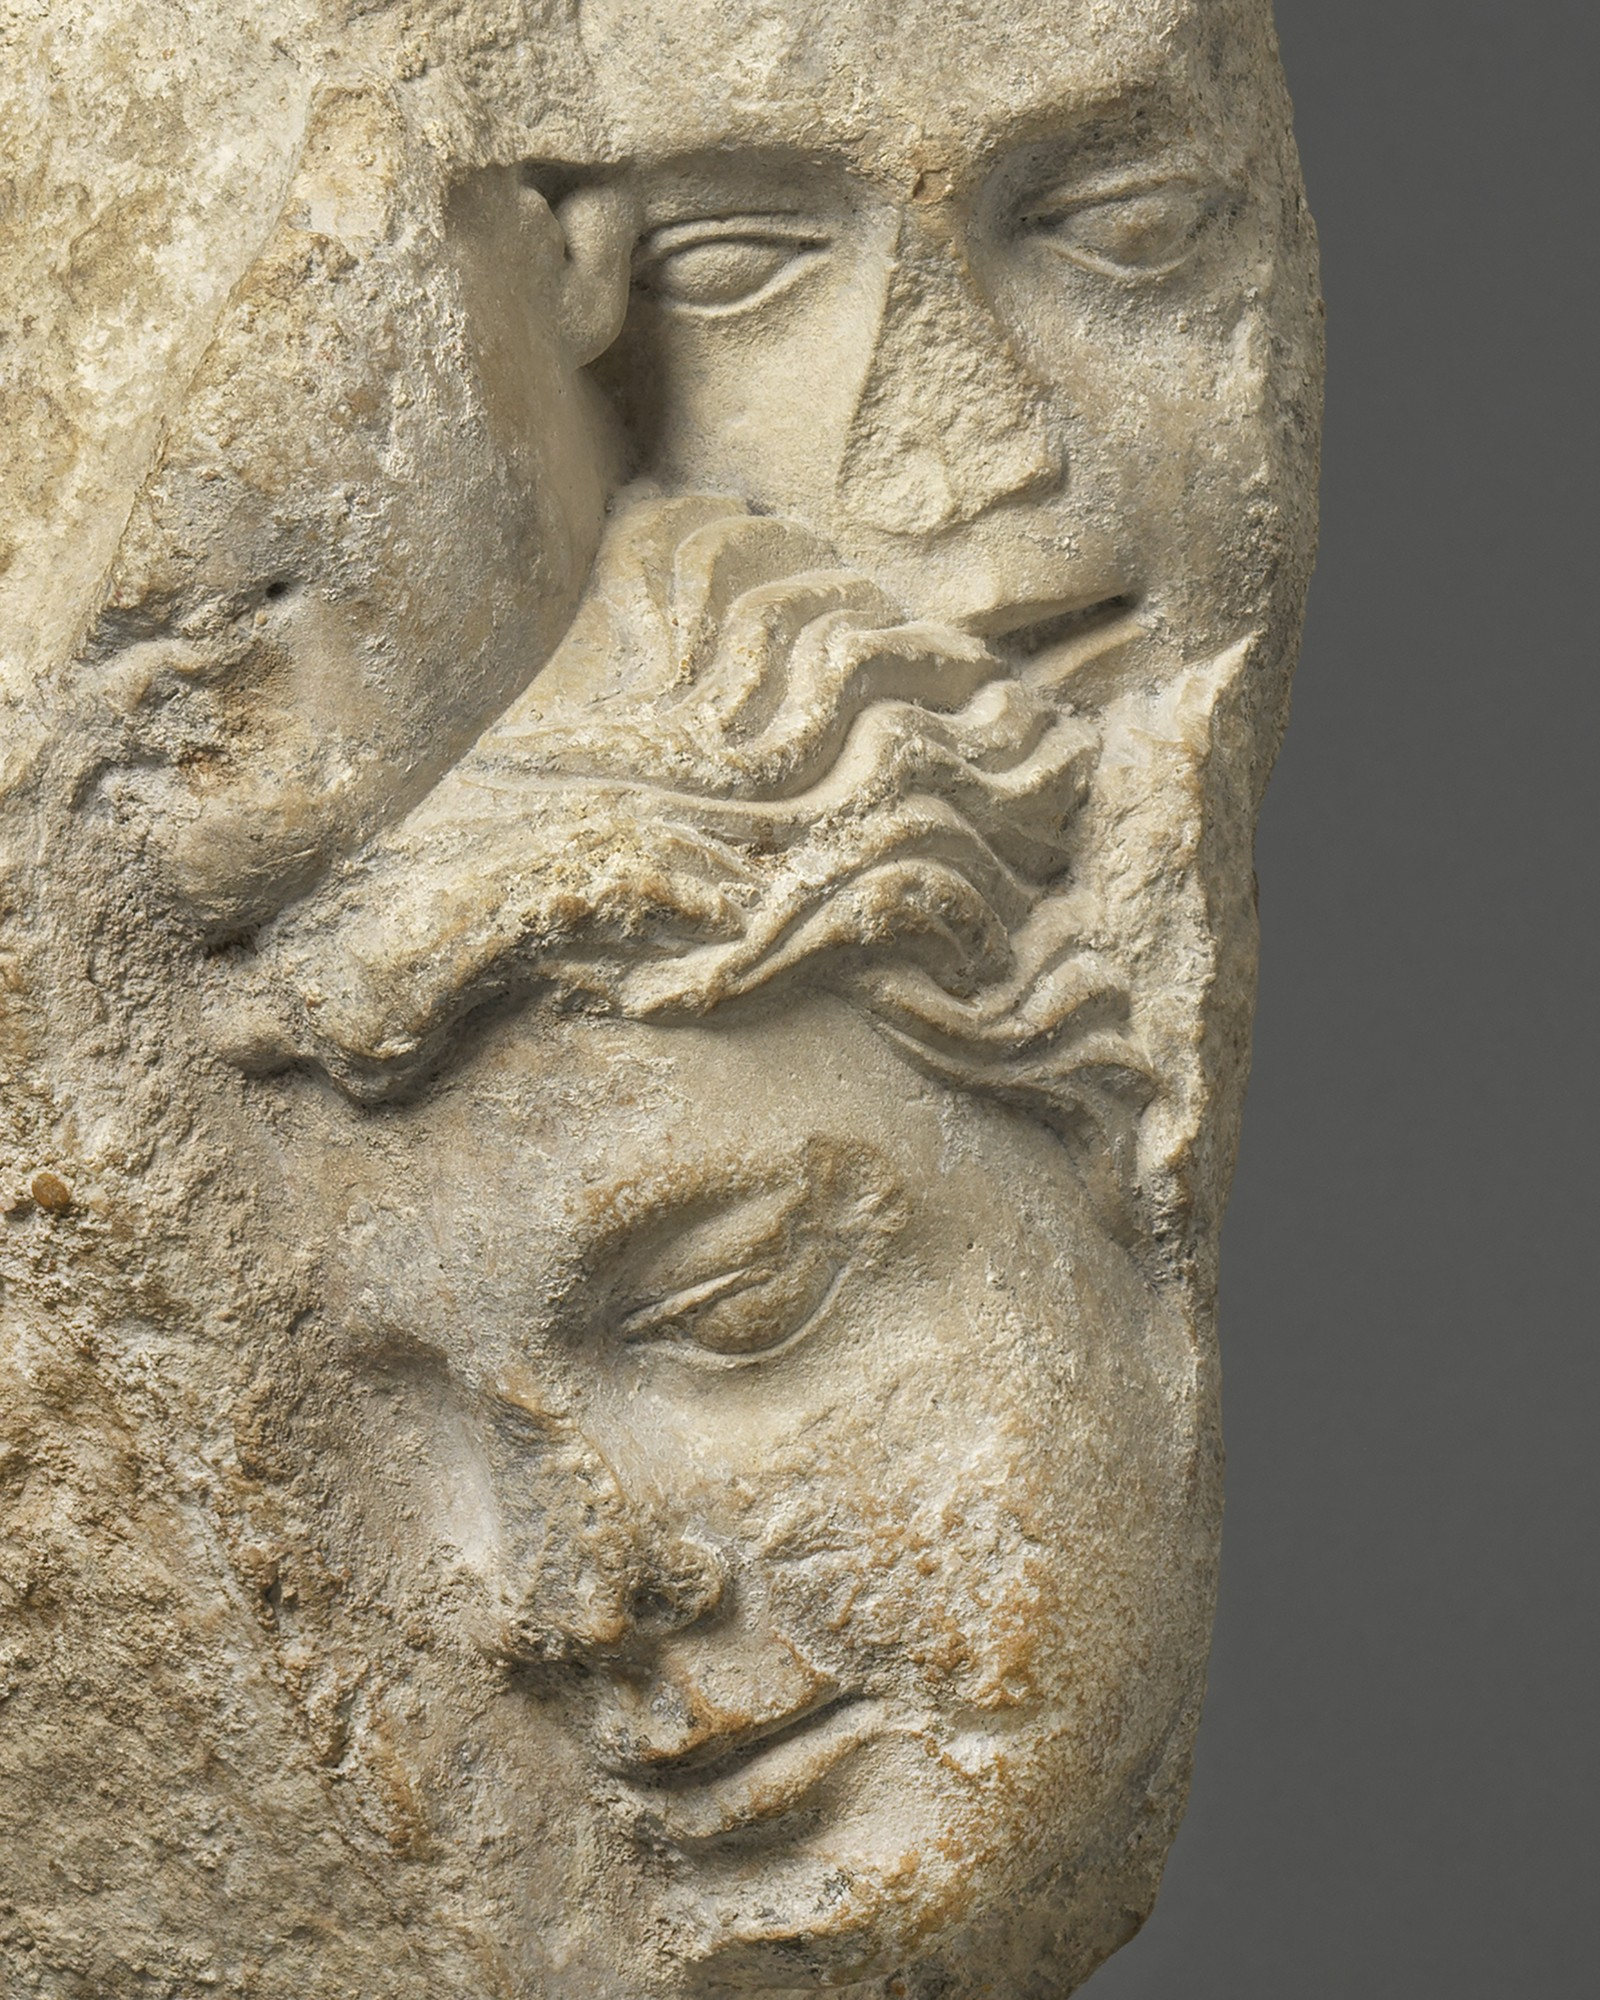 Relief with Group of Faces, France, c. 1200 – 1220